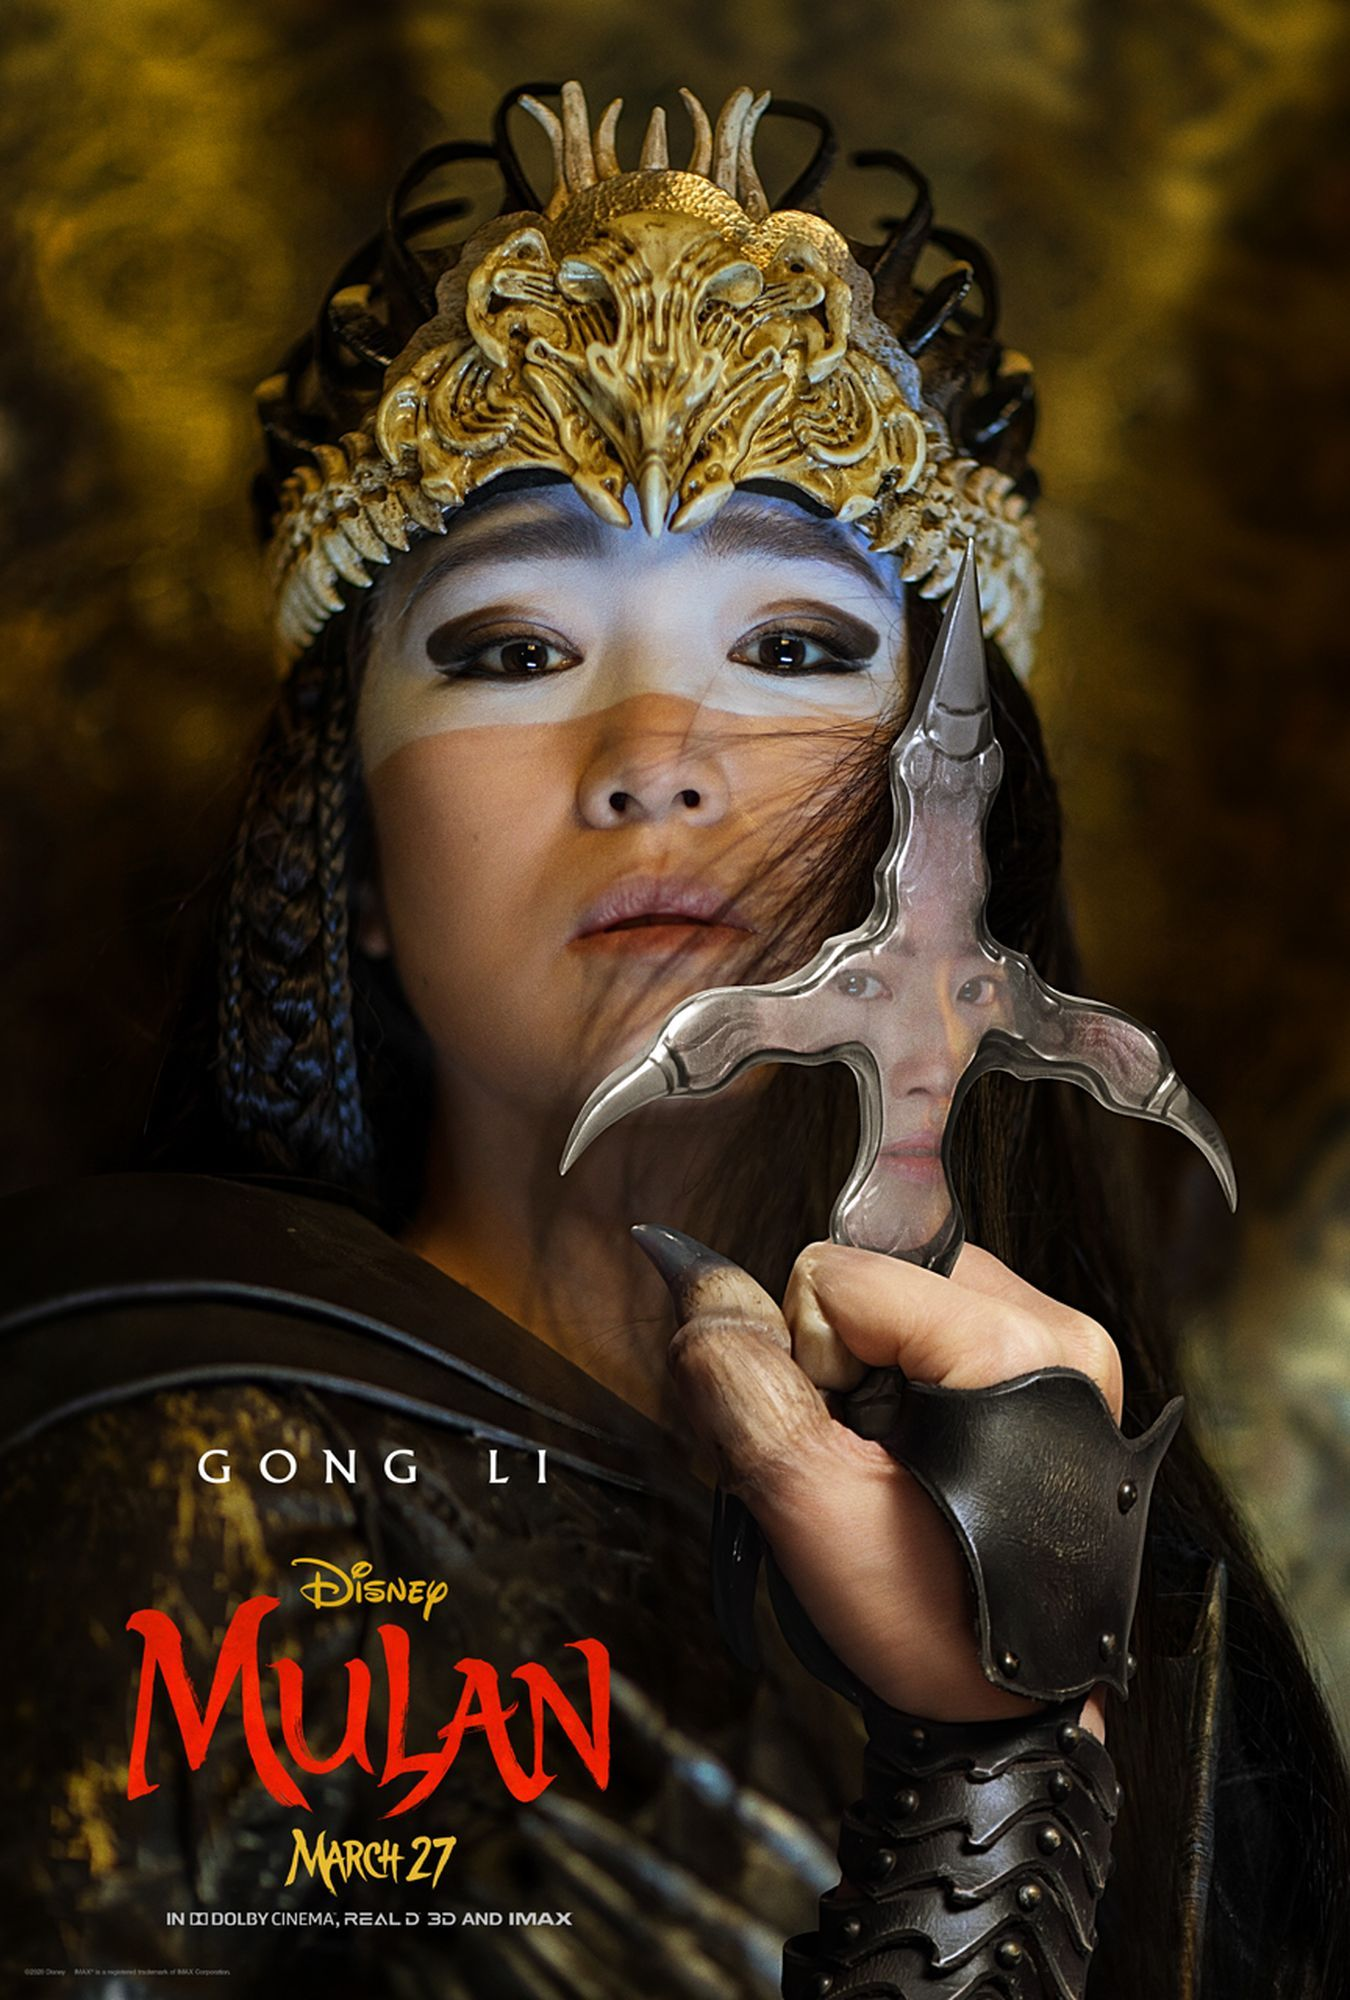 Mulan Cast Is Introduced In A Sharp Set Of New Character Posters In 2020 Mulan Movie Watch Mulan Free Movies Online